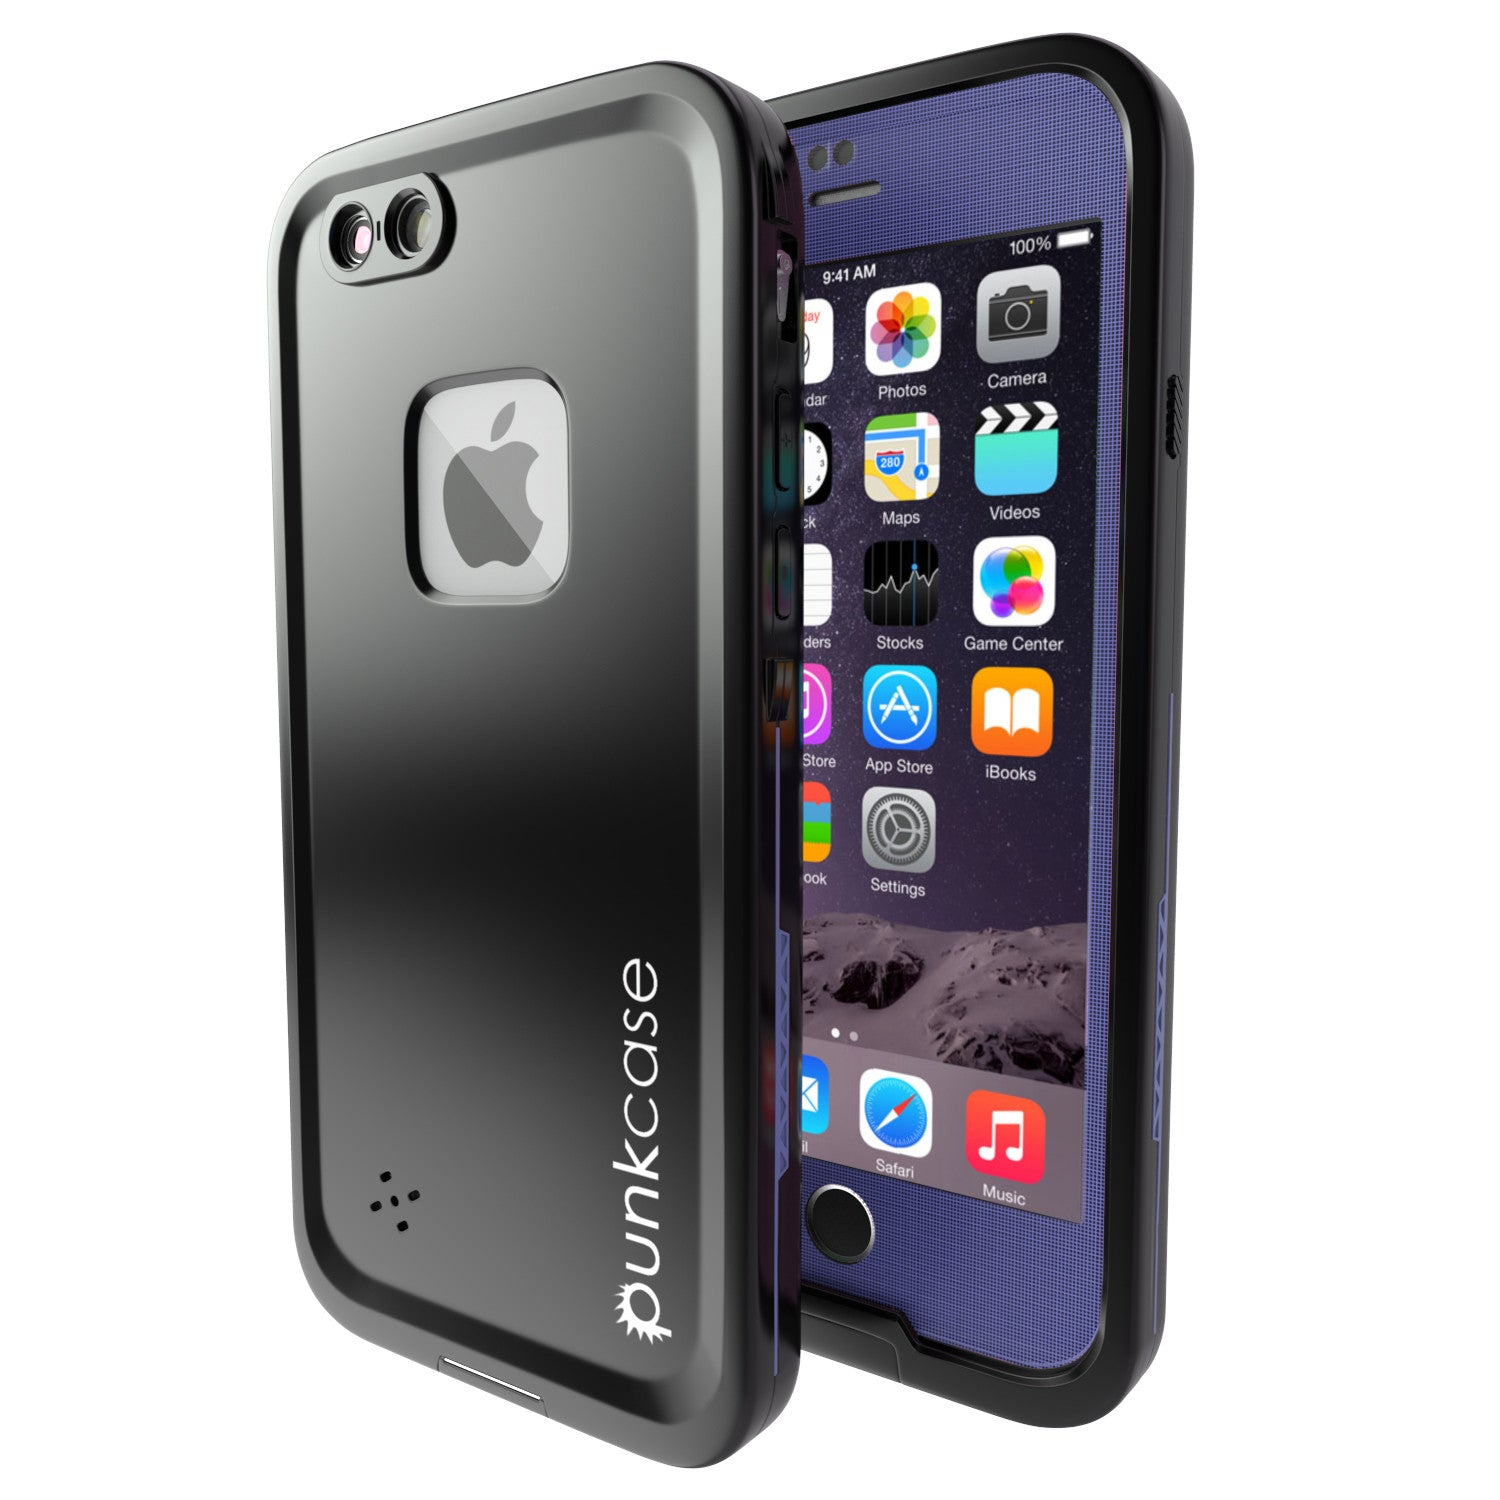 iPhone 6S+/6+ Plus Waterproof Case, Punkcase SpikeStar Purple Thin Fit 6.6ft Underwater IP68